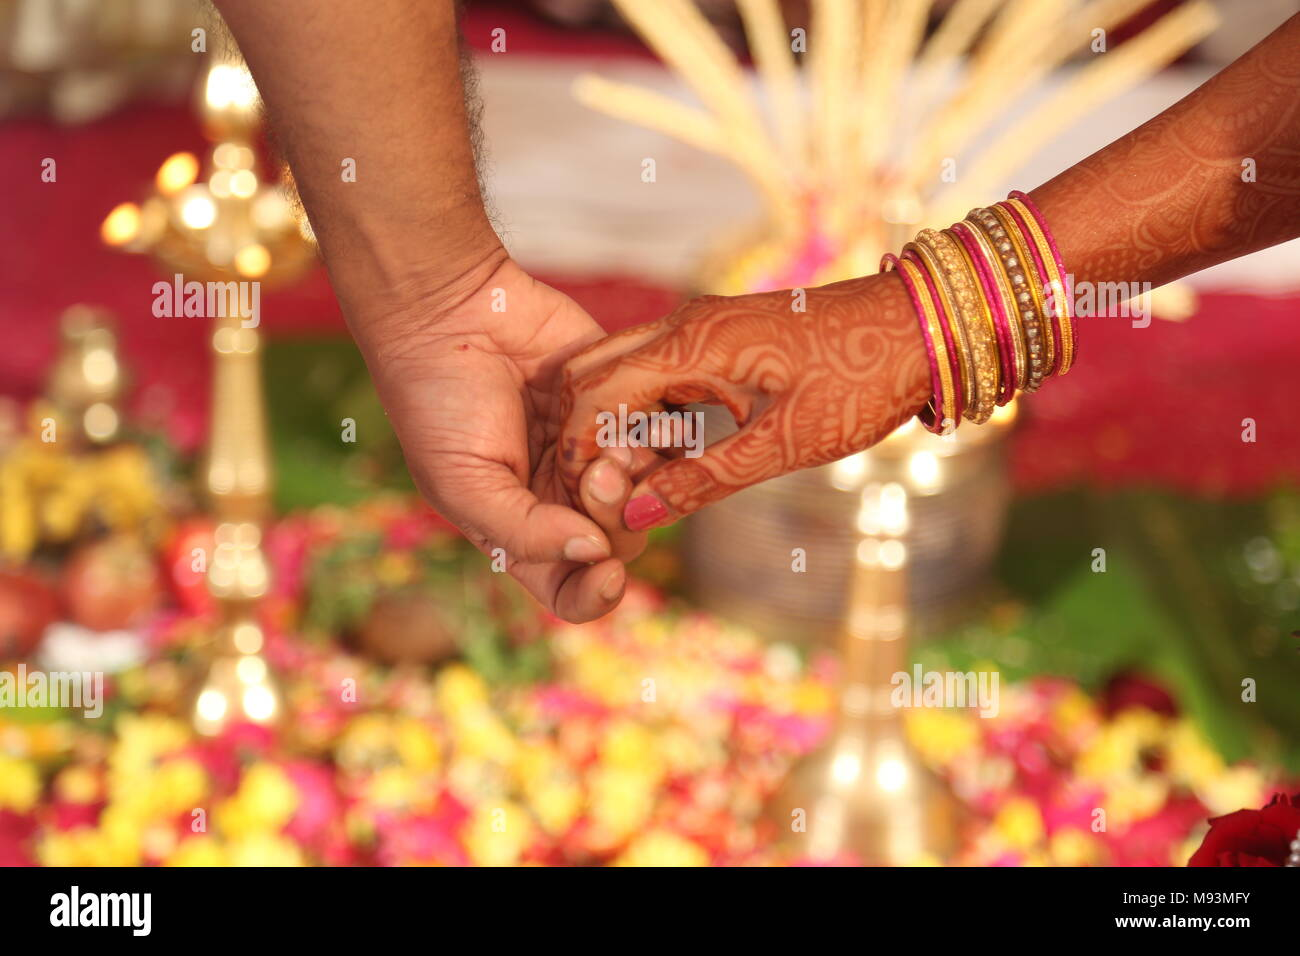 Indian Marriage High Resolution Stock Photography And Images Alamy